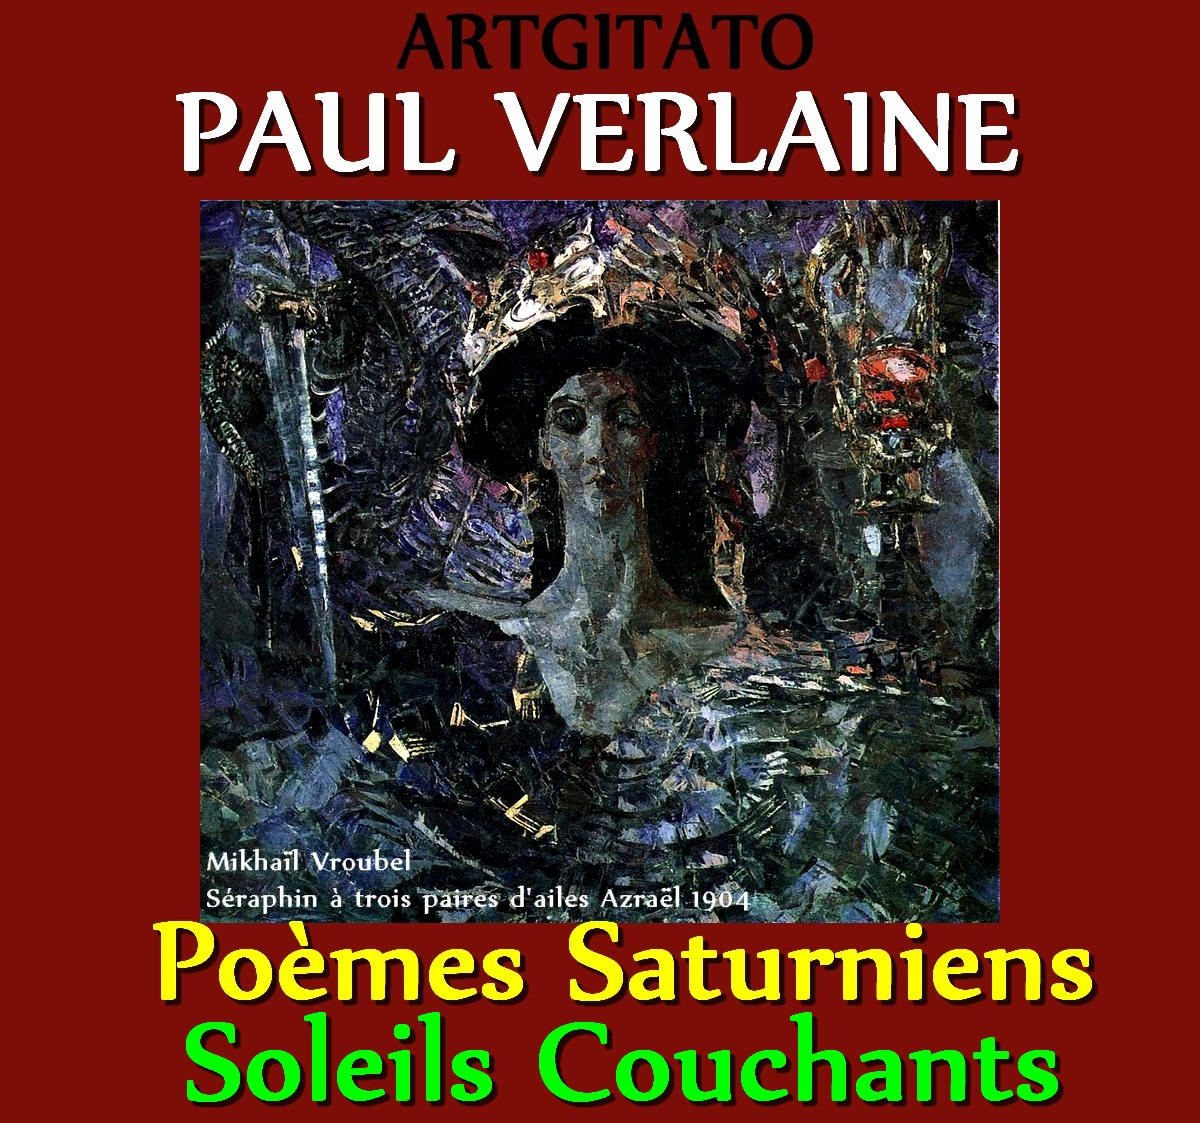 Soleils Couchants Paul Verlaine Poèmes Saturniens Artgitato